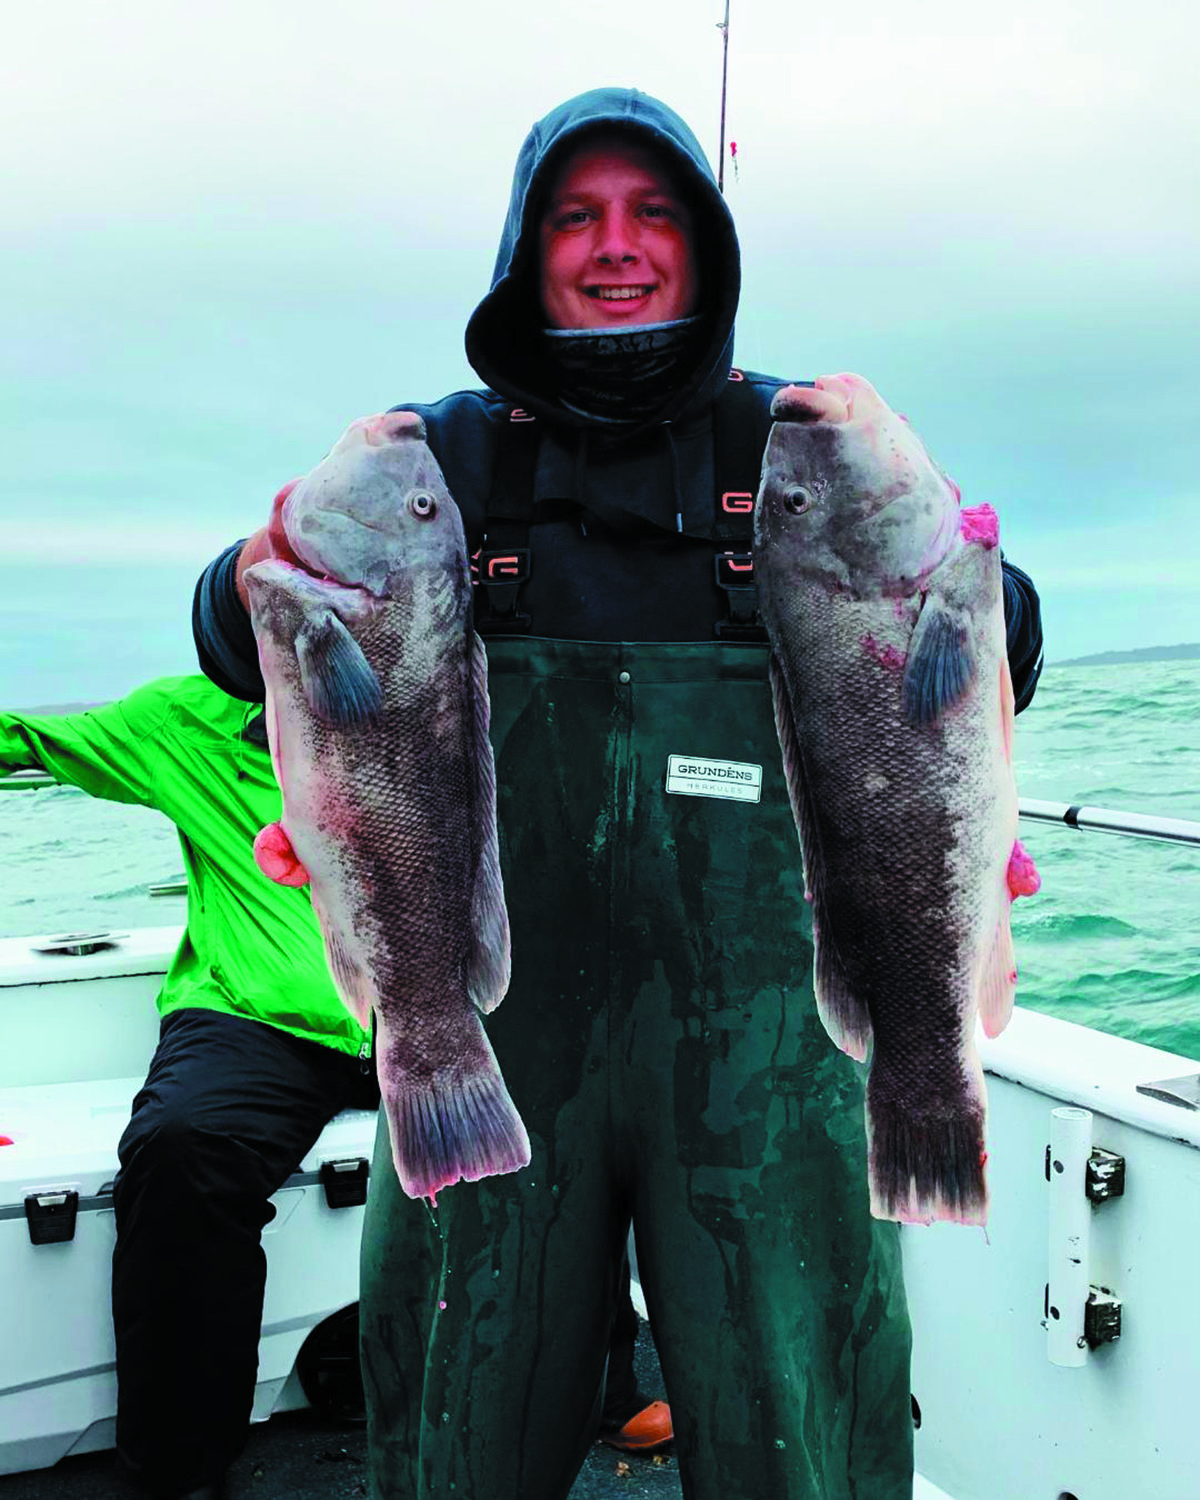 BIG TAUTOG BITE: Bobby Bisset of Narragansett with tautog he caught while fishing on a Frances Fleet boat out of Pt. Judith, RI last week.